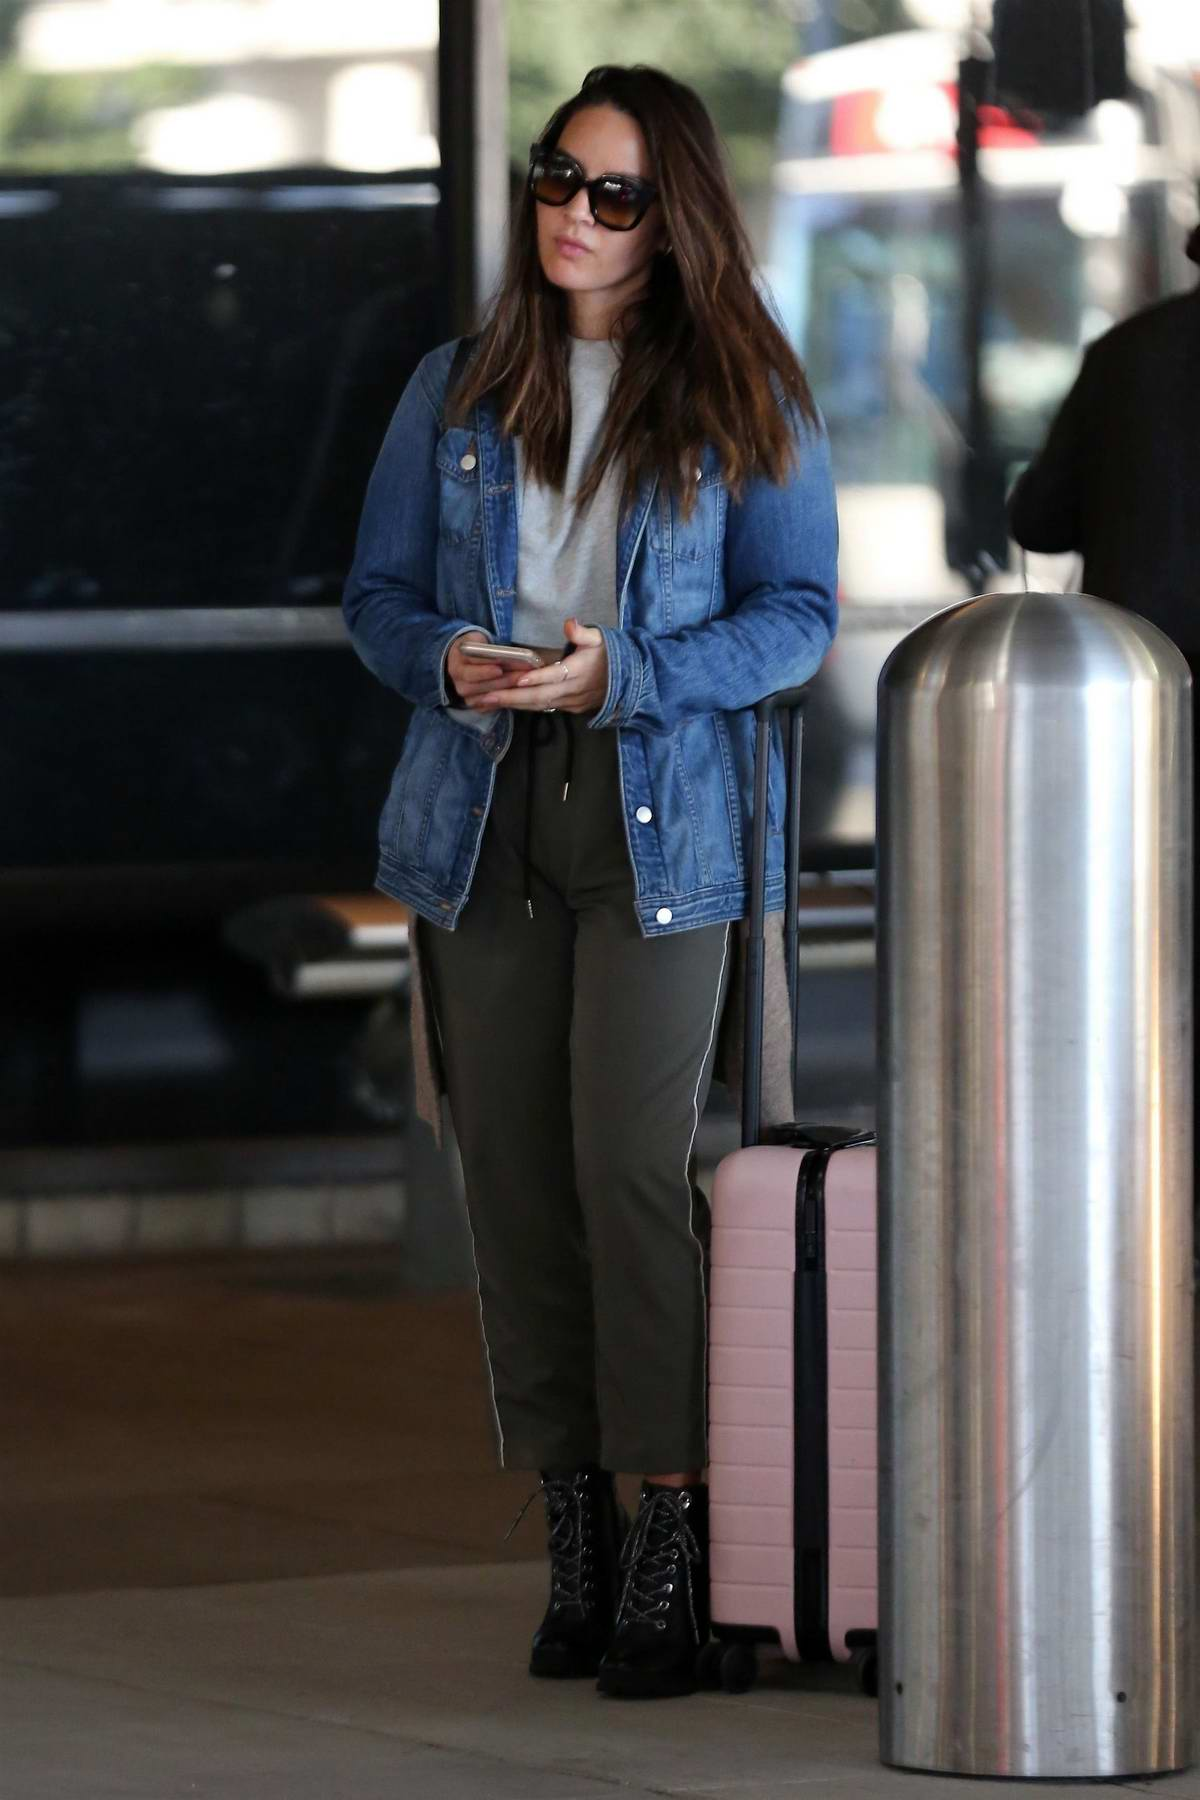 Olivia Munn spotted while waiting for her ride outside LAX airport in Los Angeles